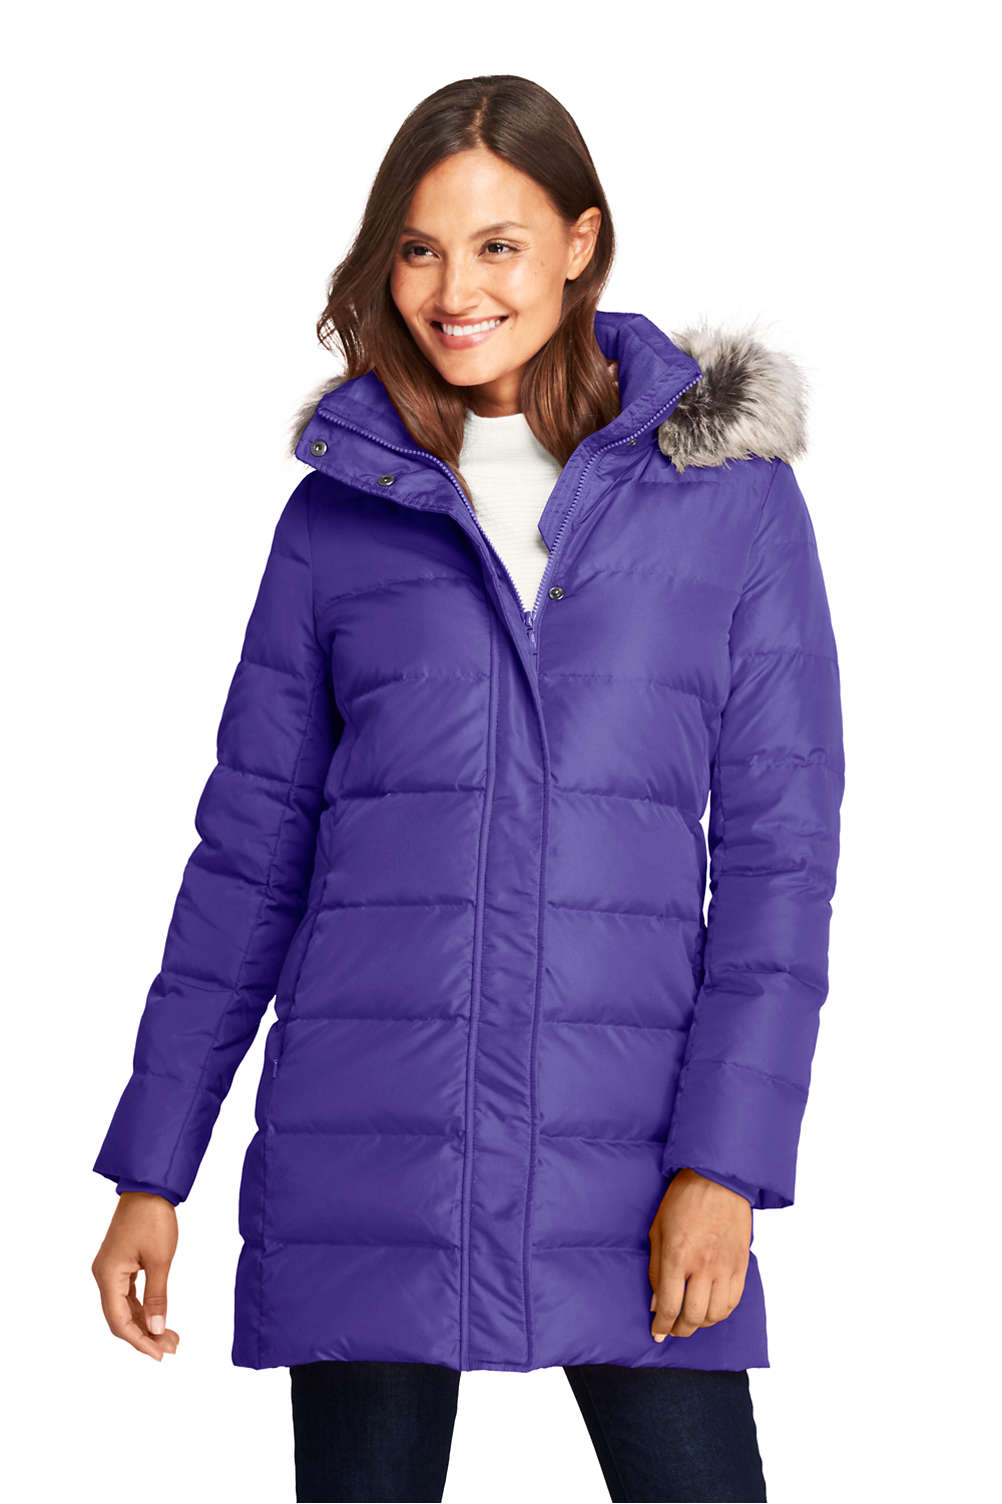 7753a75b8 Women's Winter Long Down Coat with Faux Fur Hood from Lands' End